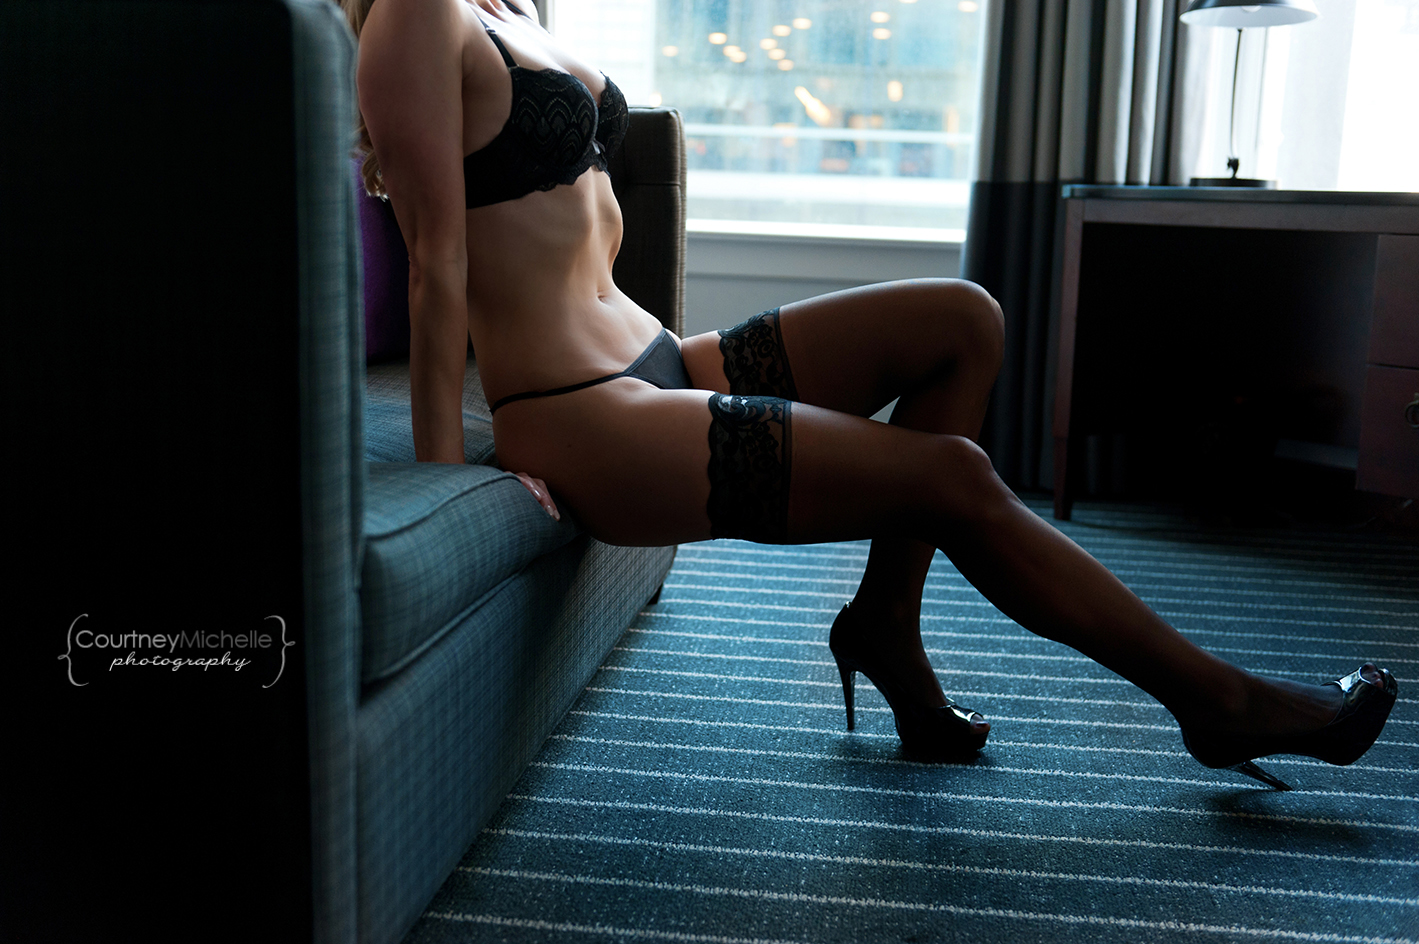 woman-in-lingerie-on-couch-in-hotel-living-room-chicago-boudoir-photography-by-courtney-laper.jpg